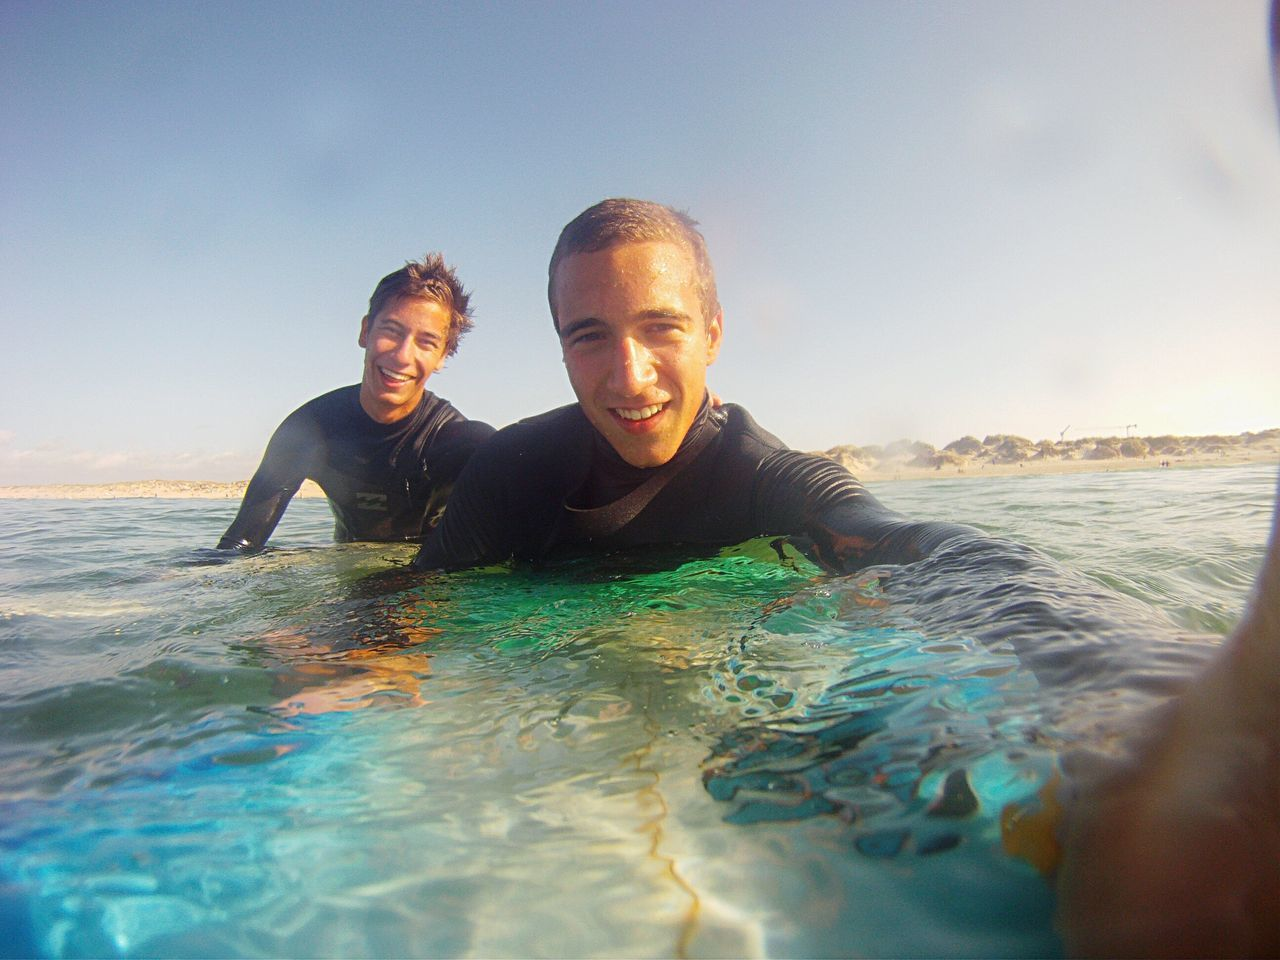 Enjoy The New Normal Surf Lifestyle Friend Sports Water Waves